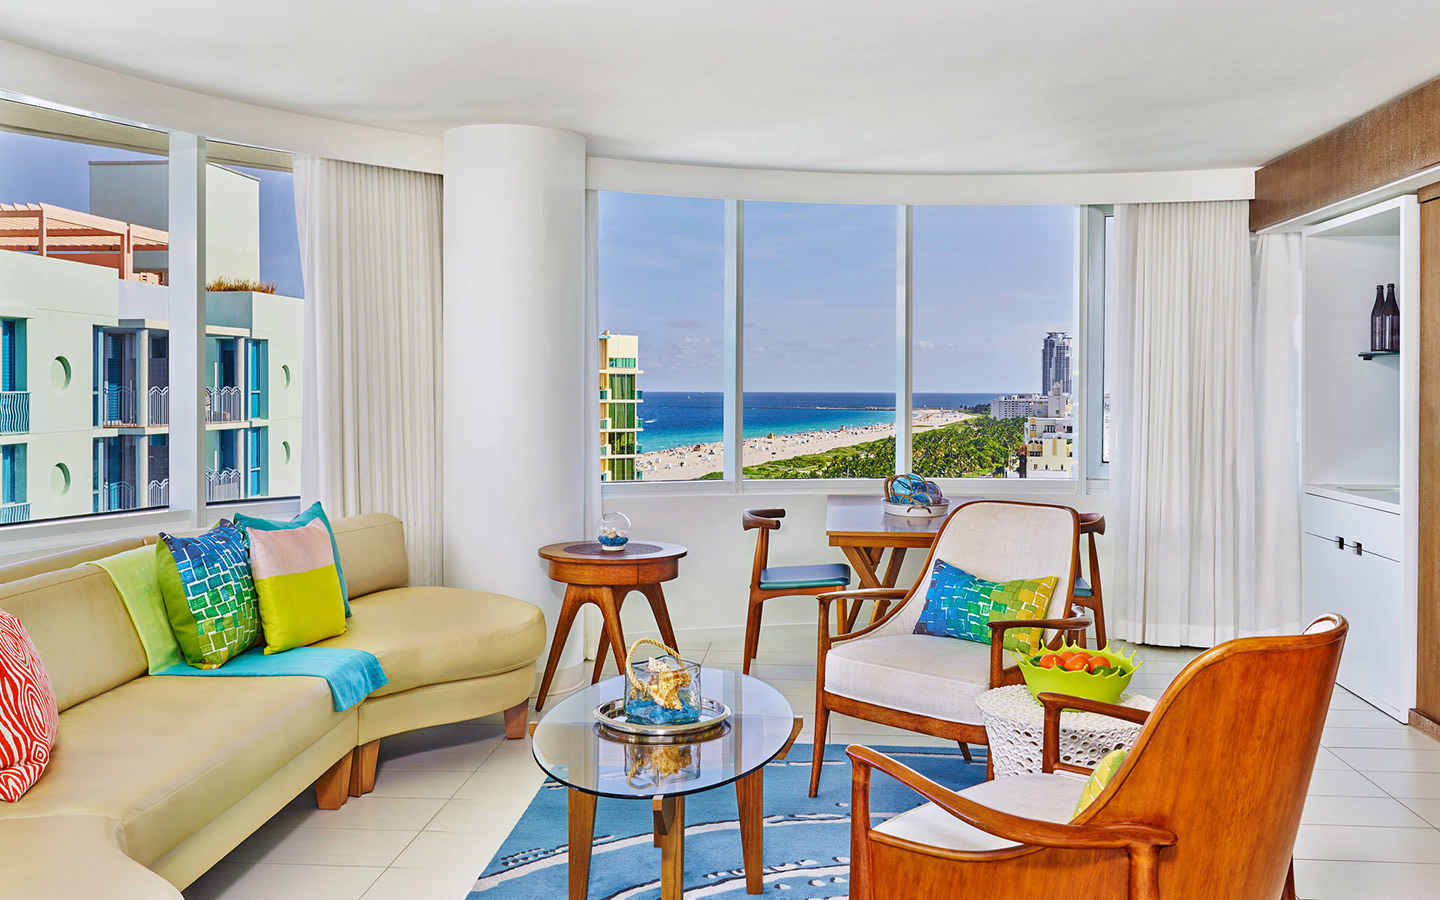 Royal palm south beach miami - 2 bedroom hotel suites in miami south beach ...